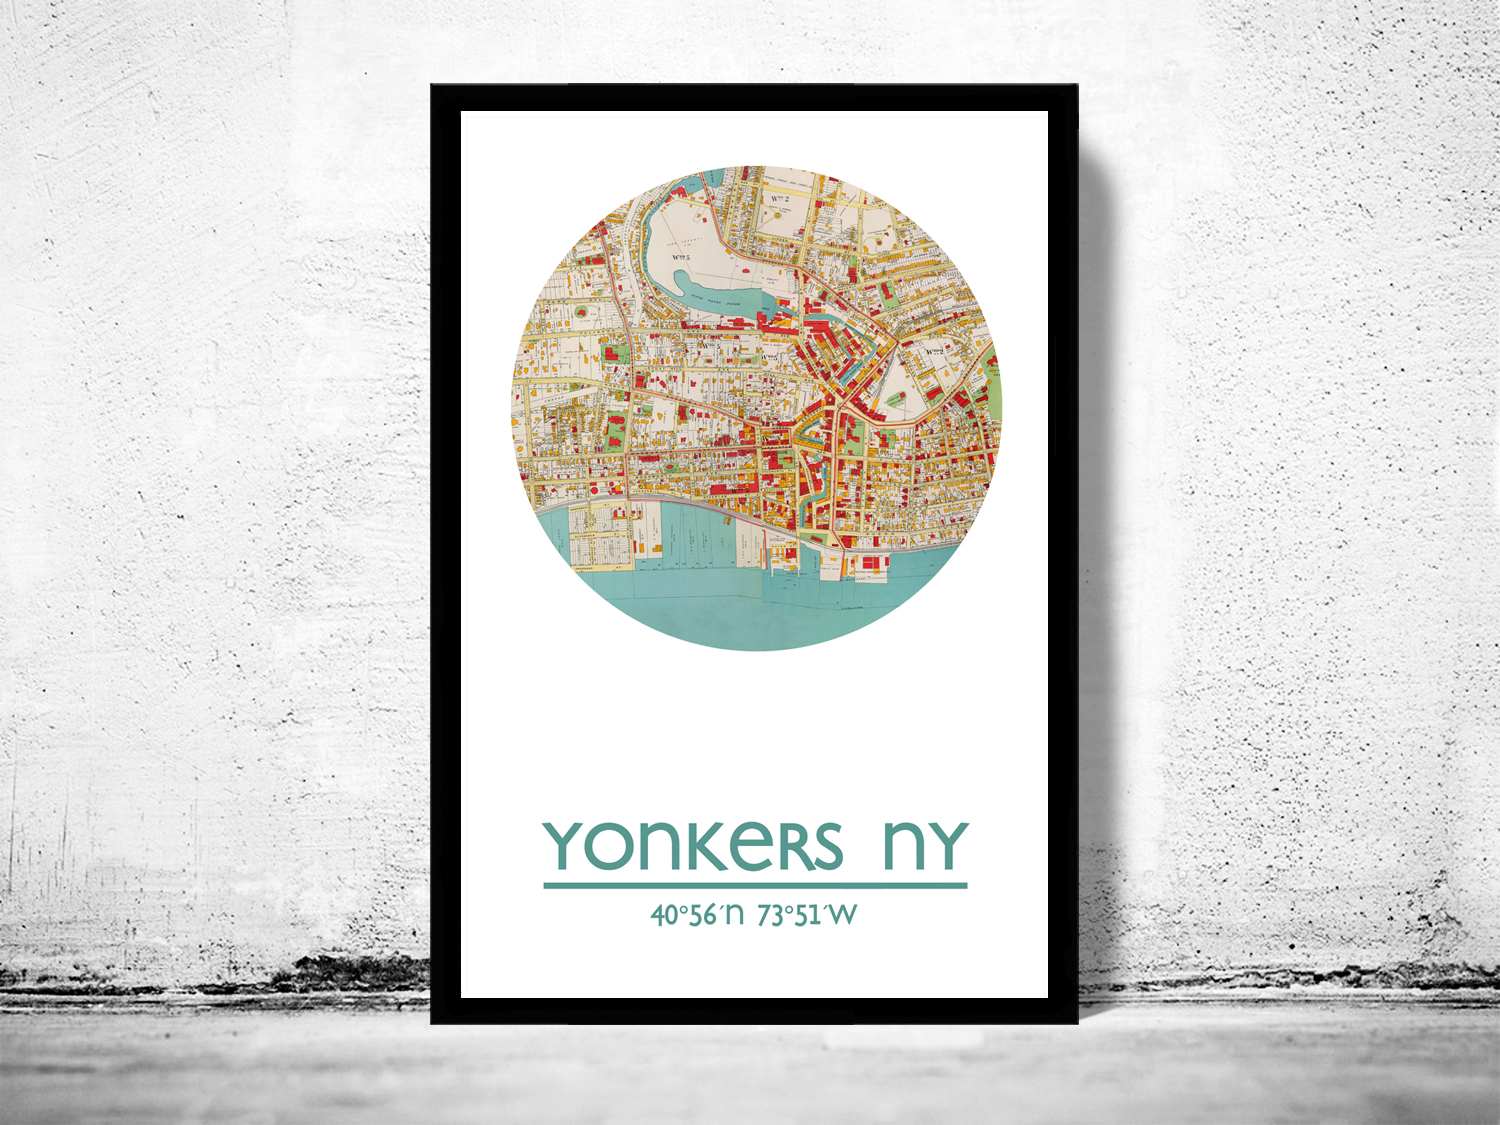 Yonkers Map on richfield springs map, stuyvesant map, staten island map, suffolk counties map, cornwall-on-hudson map, east ramapo map, rondout valley map, wawayanda map, new york map, white plains map, tarrytown train station map, rowayton map, fairport map, clason point map, yaphank map, lakewood map, westchester map, tioga downs map, whitestone map, queens museum map,